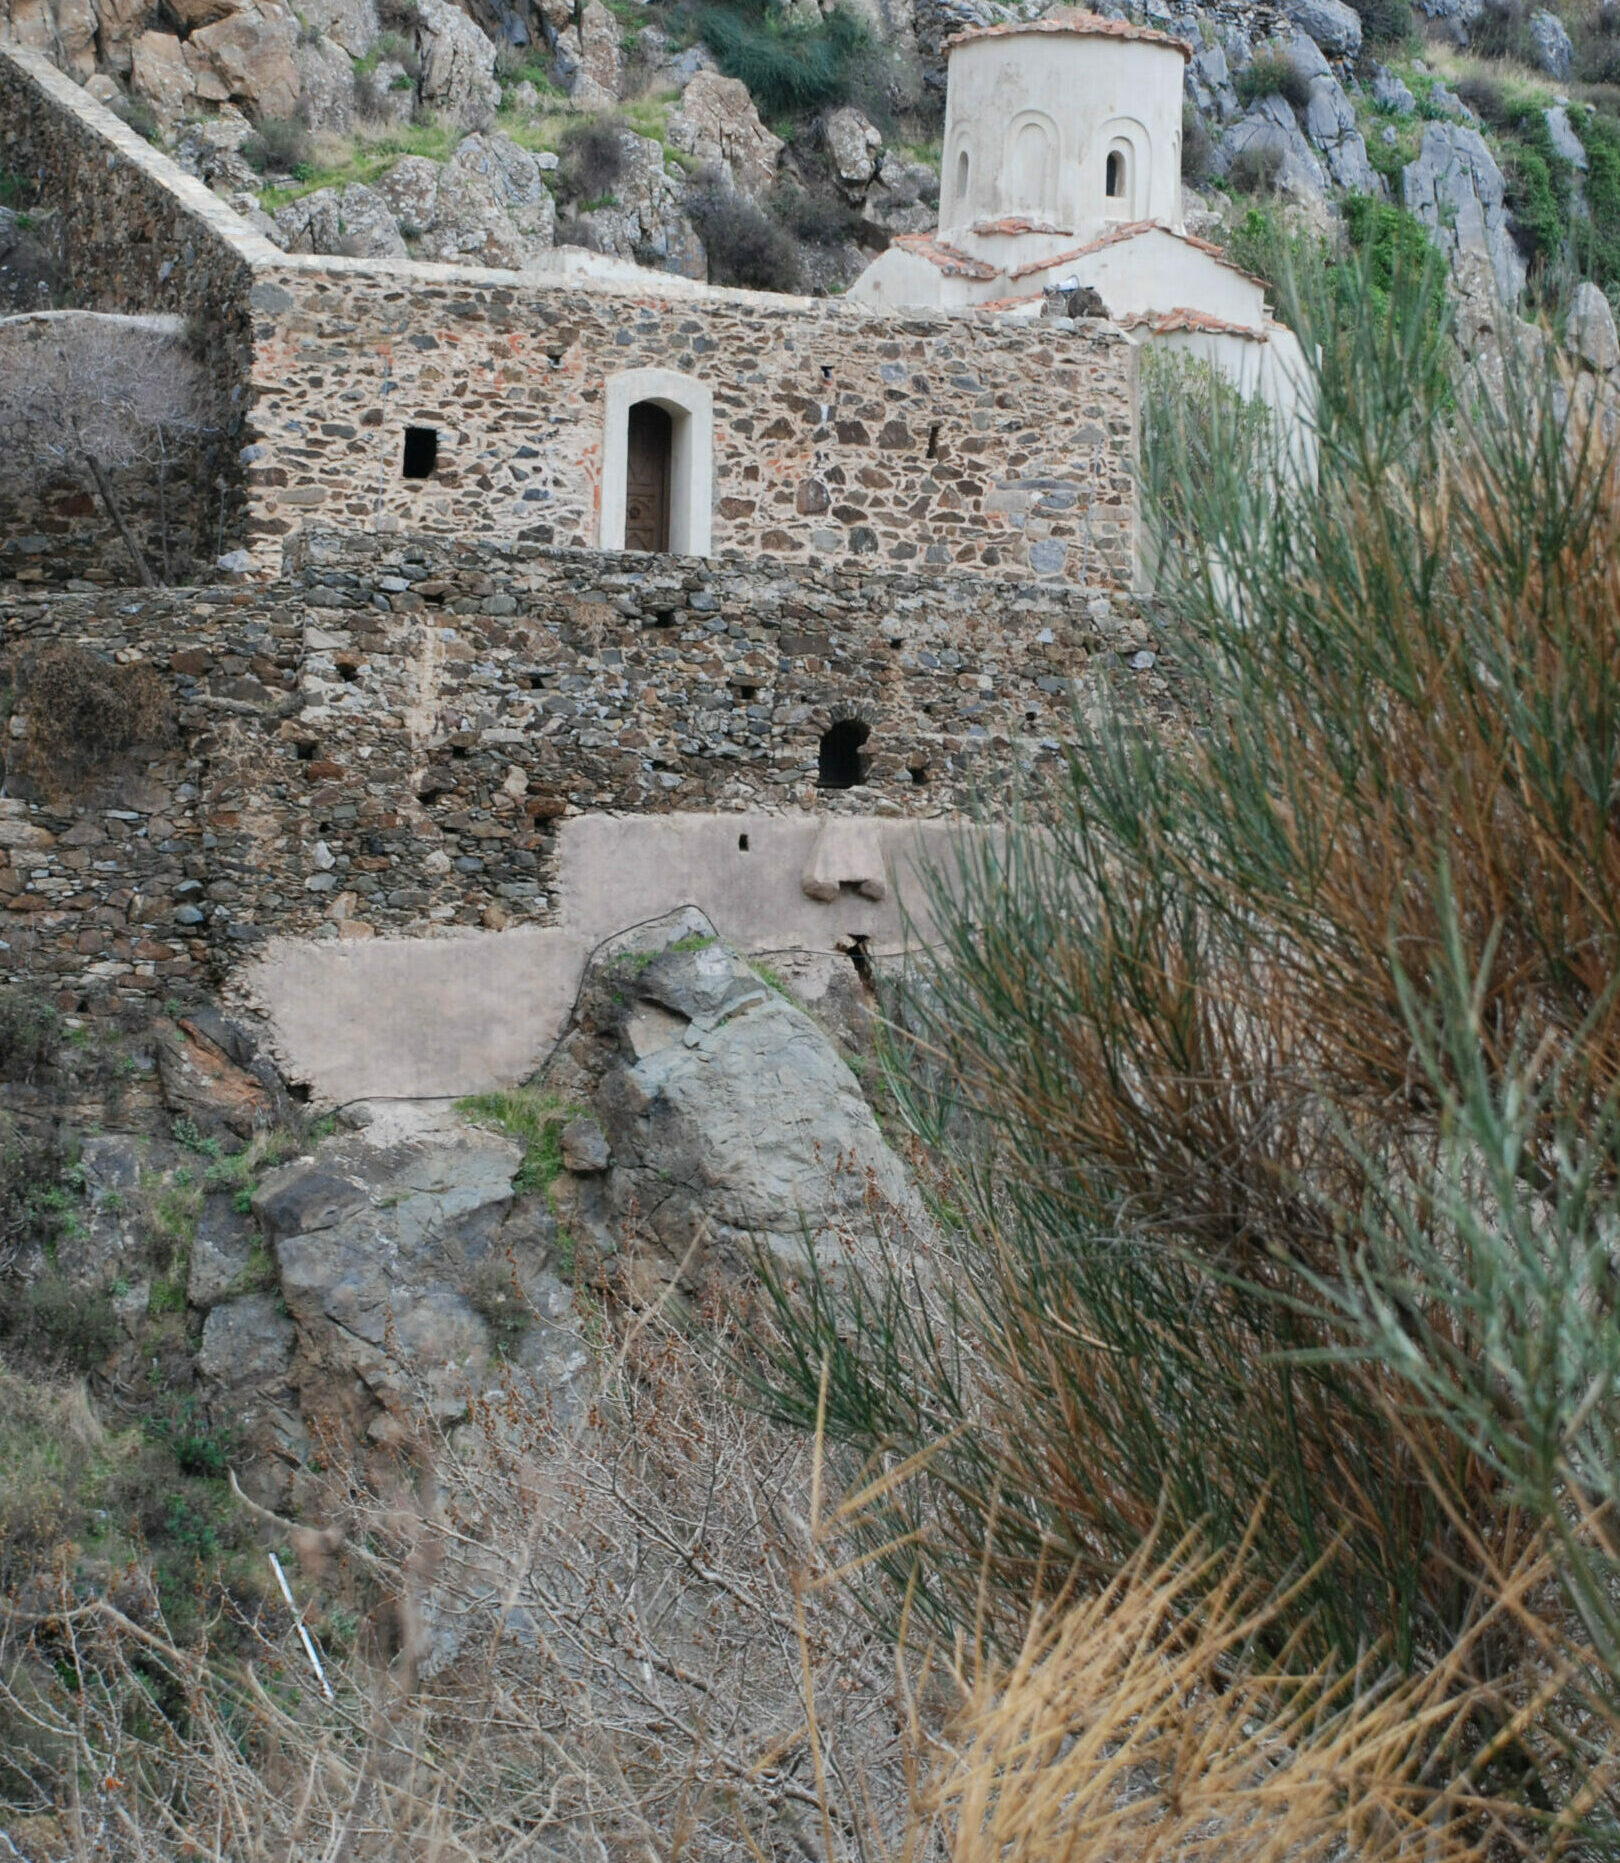 Chios: A strange legend about a princess and a Greek chapel with holy water